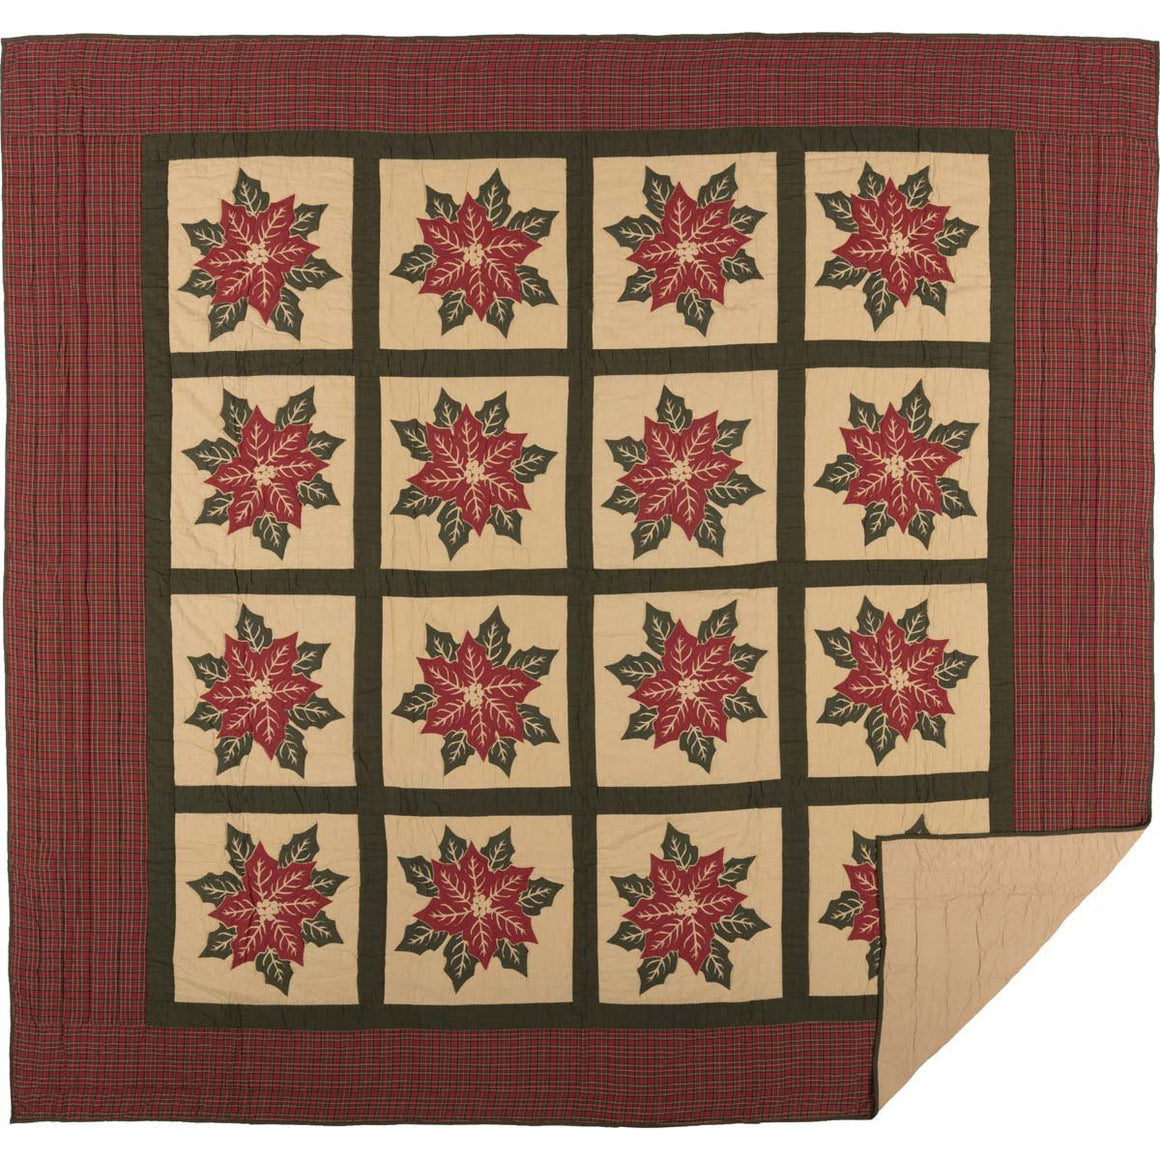 National Quilt Museum Poinsettia Block Quilt